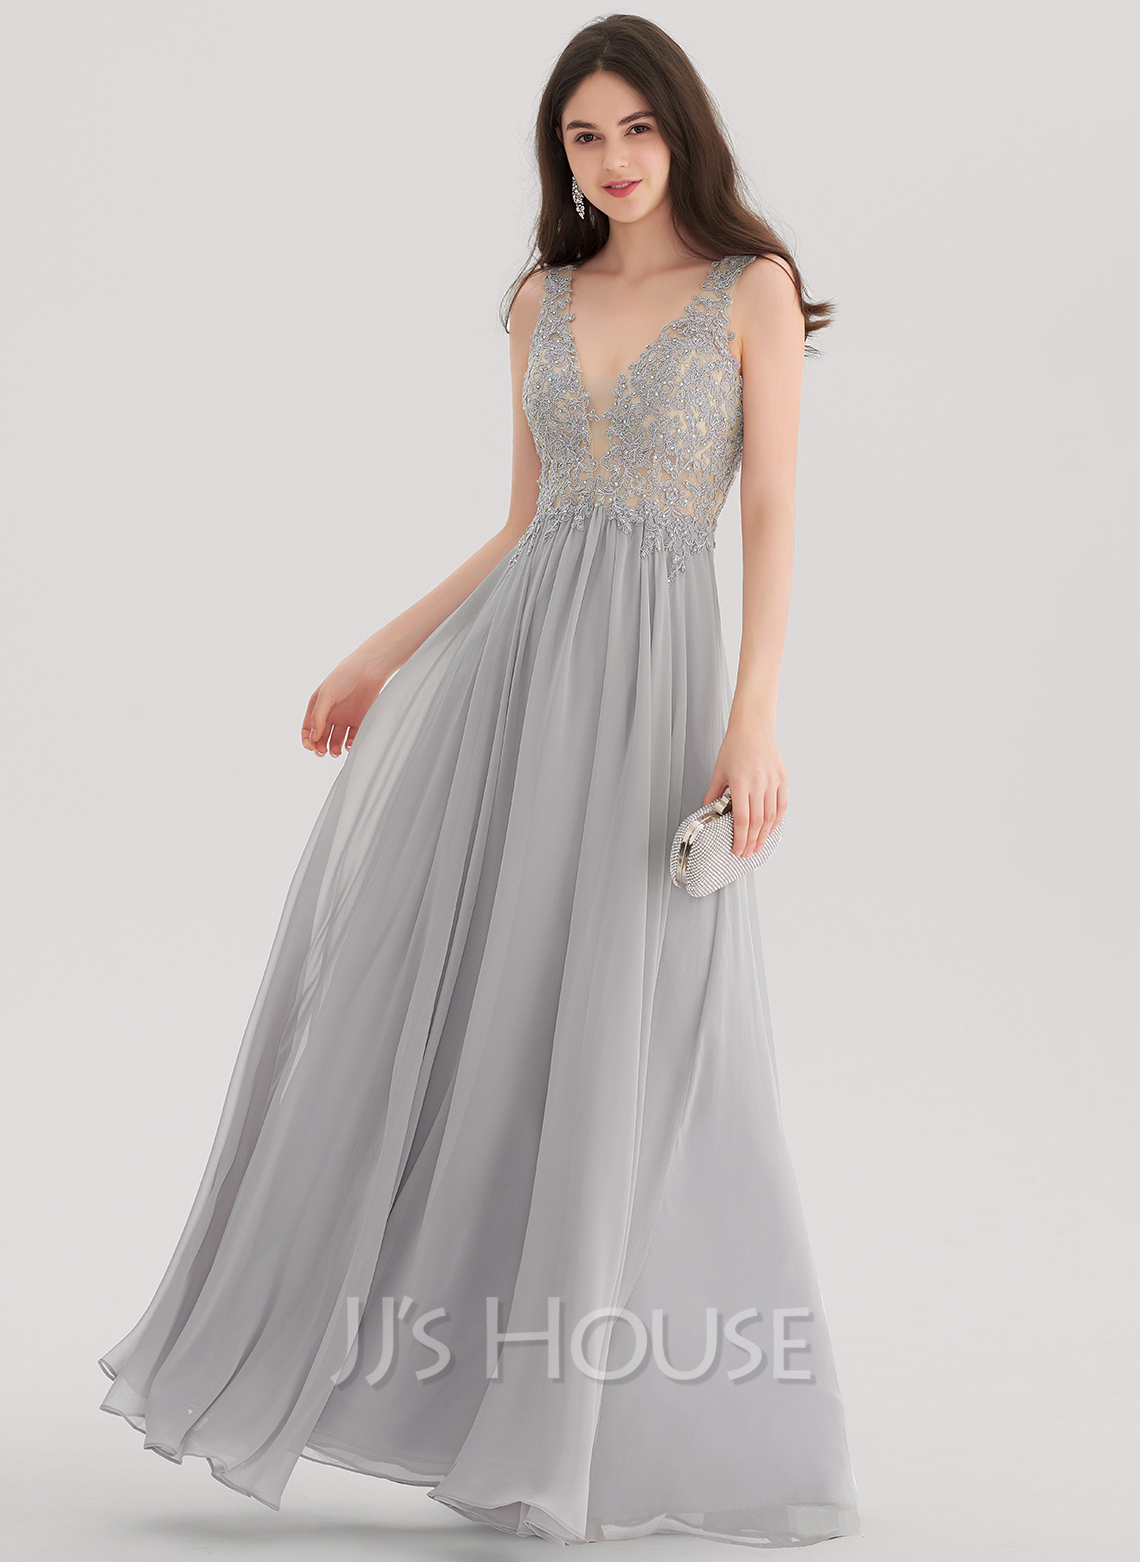 5ab33436ab7 A-Line Princess V-neck Floor-Length Chiffon Prom Dresses With Beading